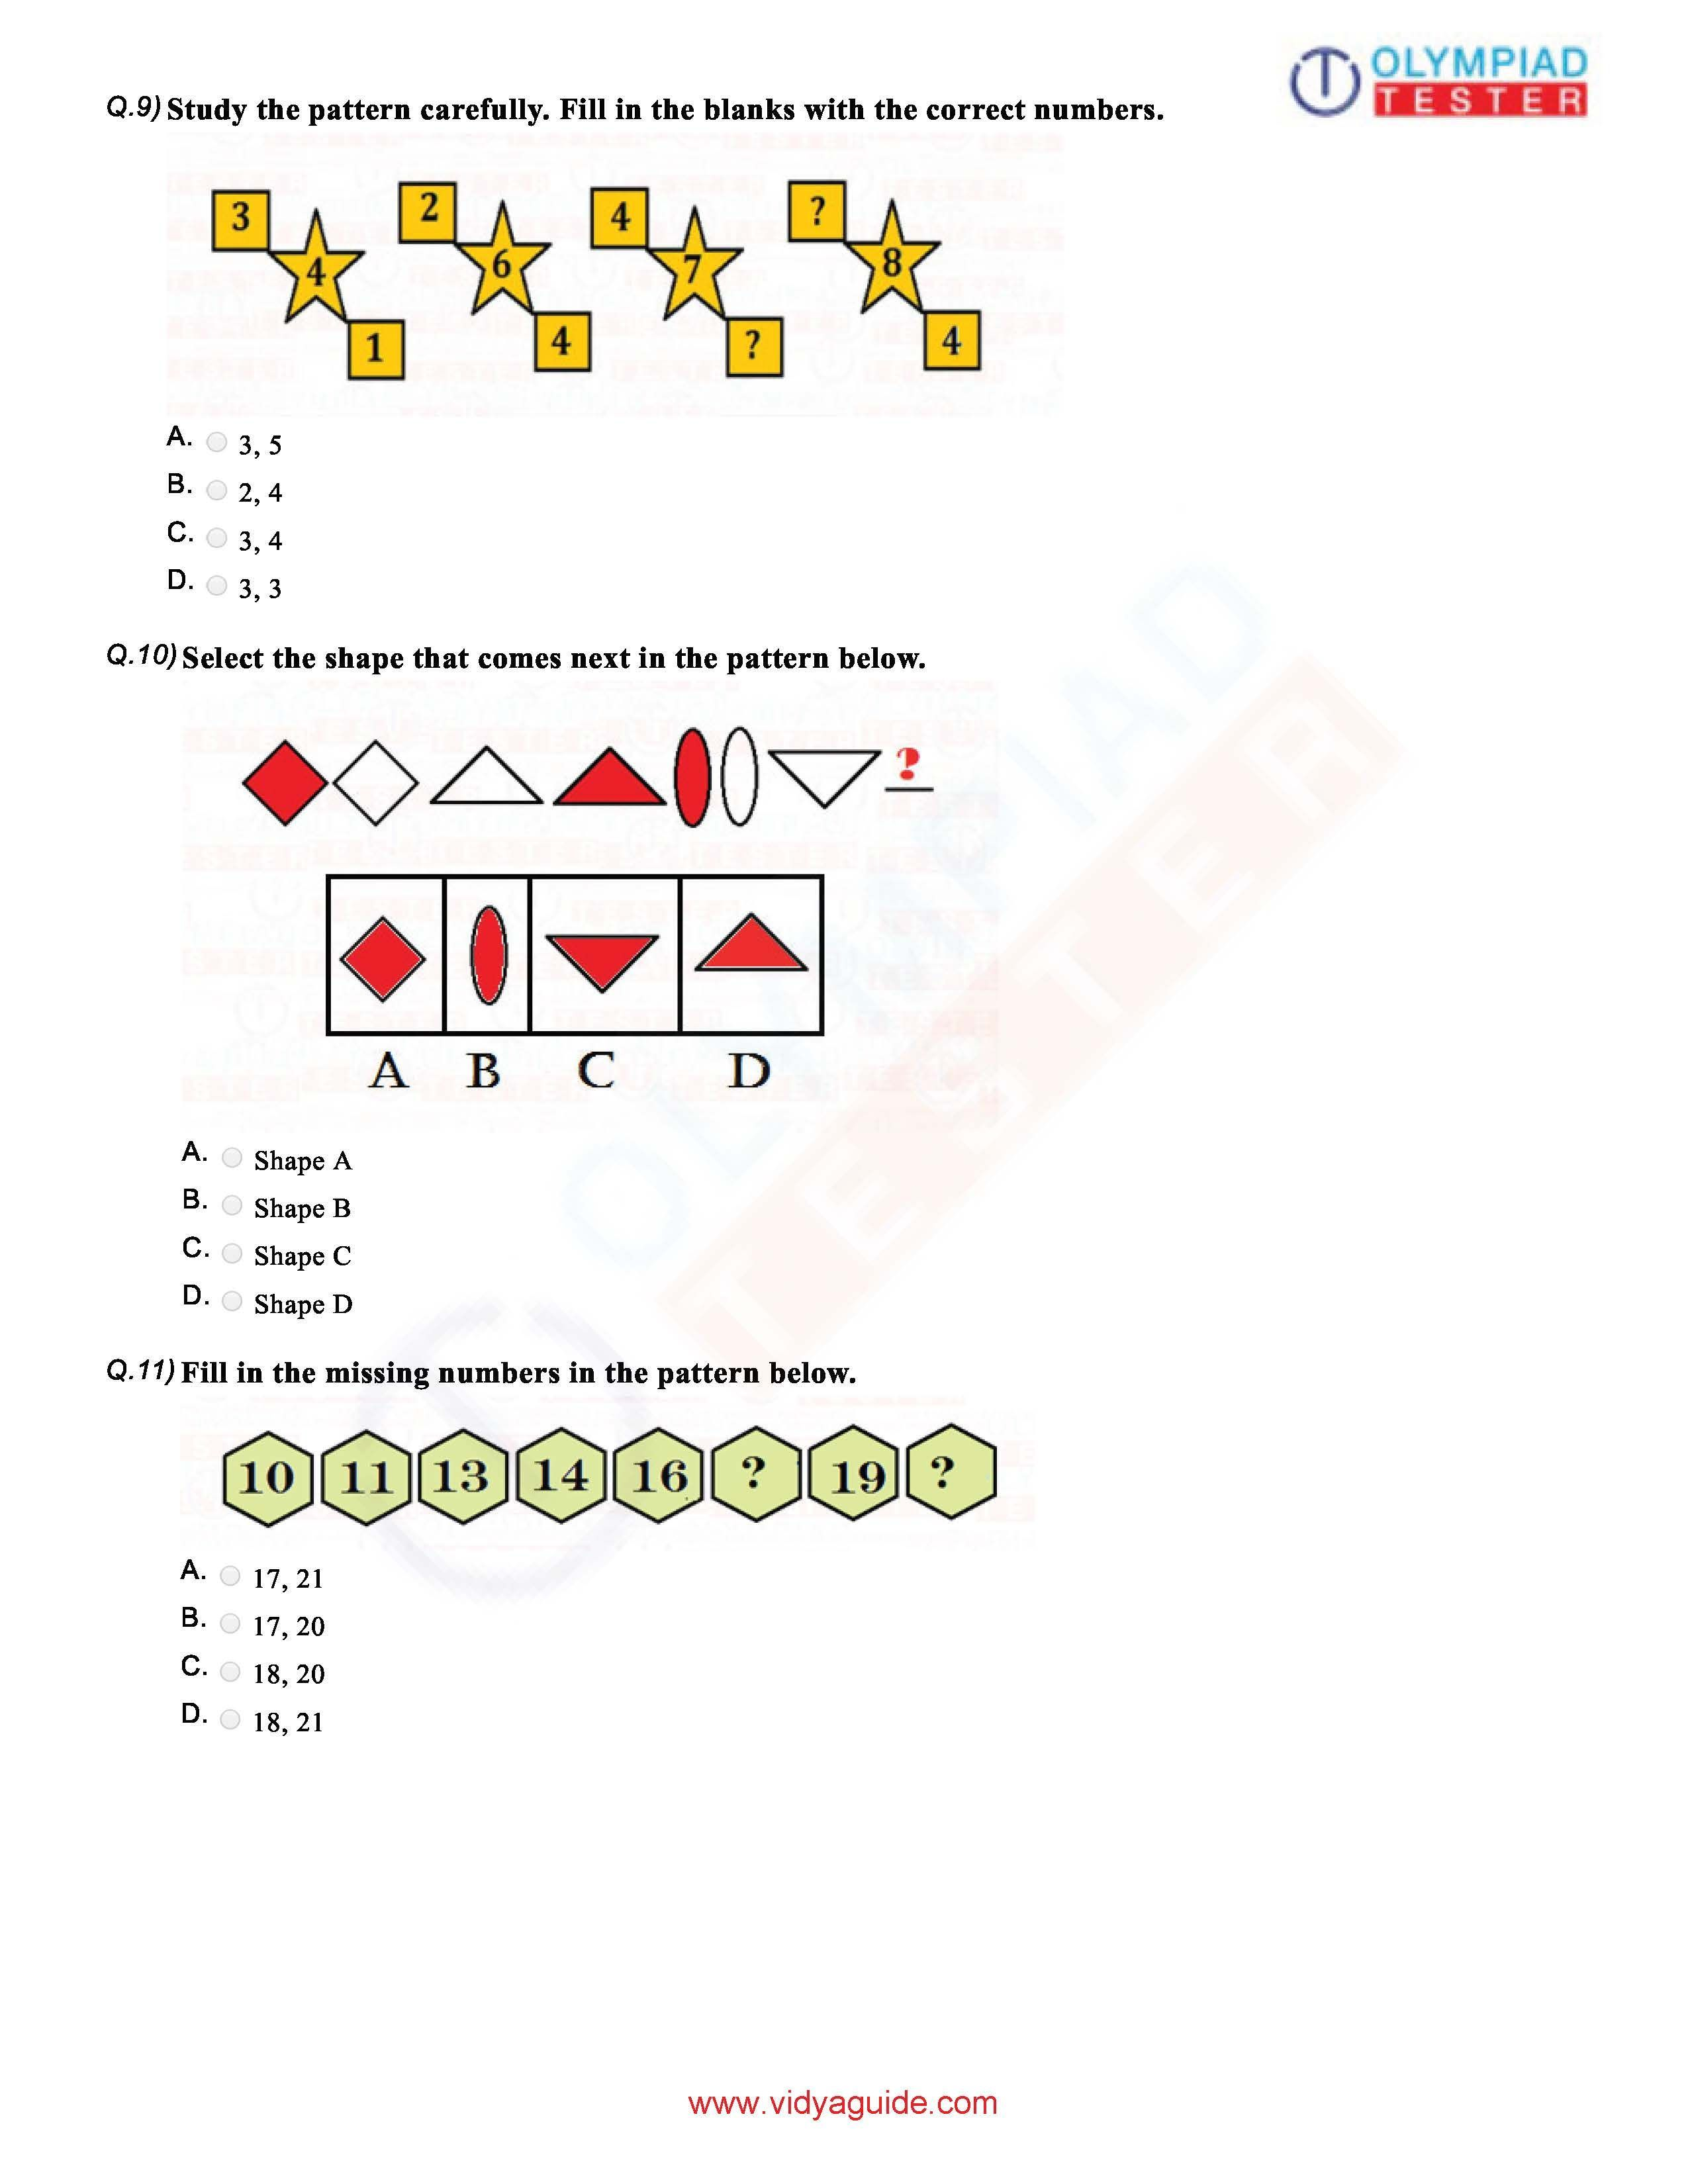 Download Grade 1 Math Olympiad Sample Paper A Pdf Worksheet On Our Website Clas Imo Free Course Of Olympiadtester Ha Research In Mathematic